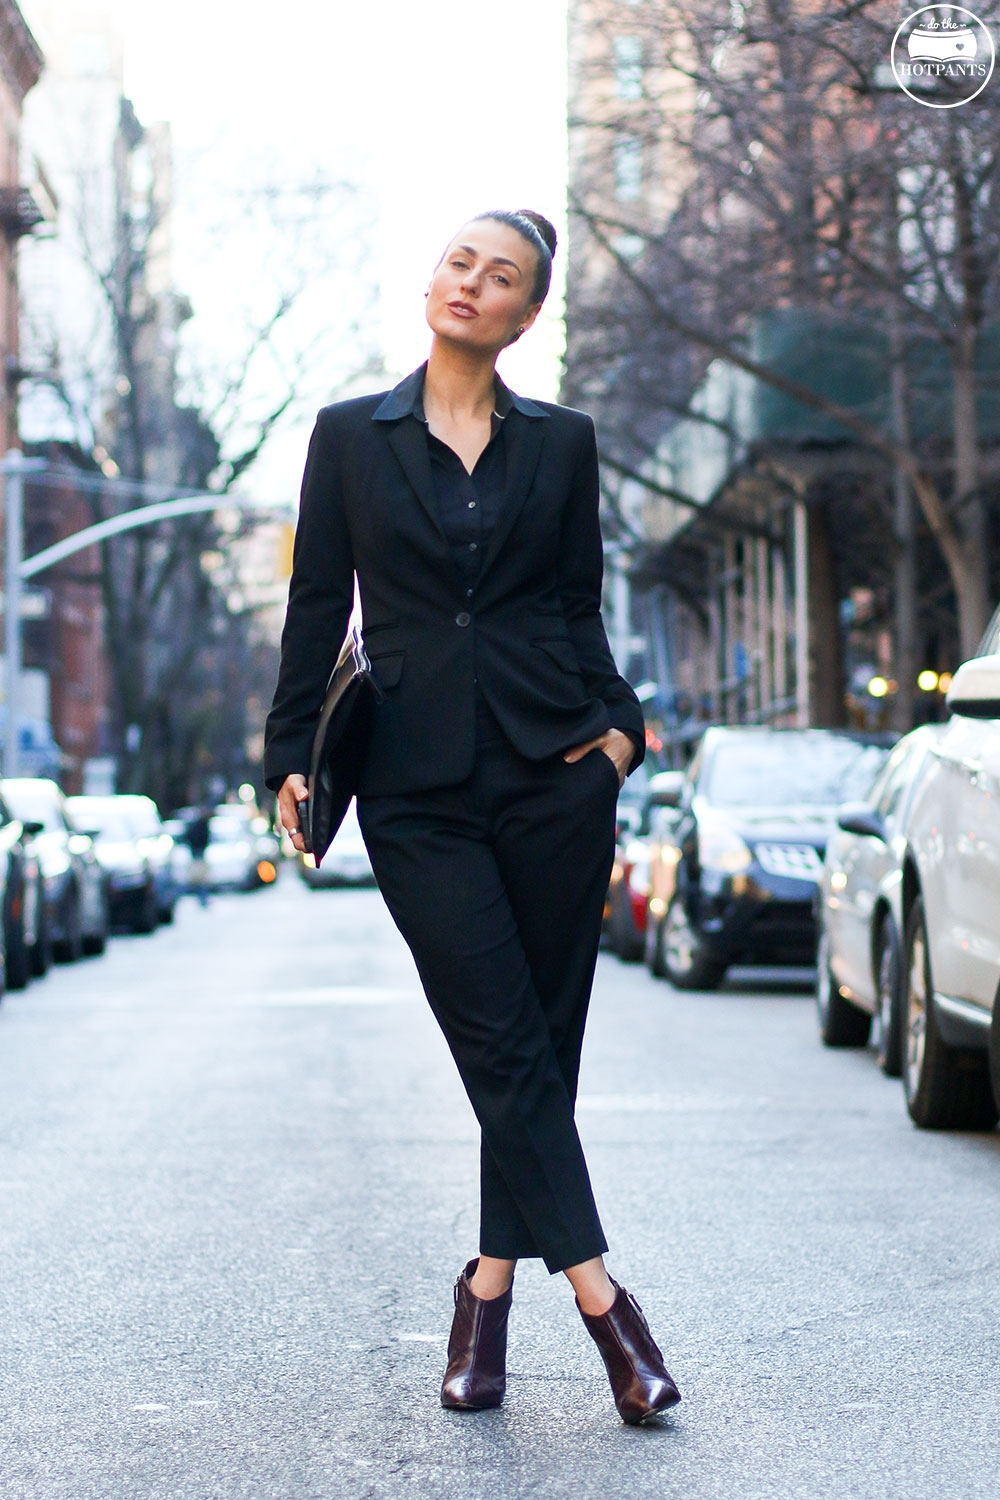 Do The Hotpants Dana Suchow Professional Outfit Interview Suit Woman in Suit Pantsuit Pant Suit Updo Female Business Attire IMG_6011